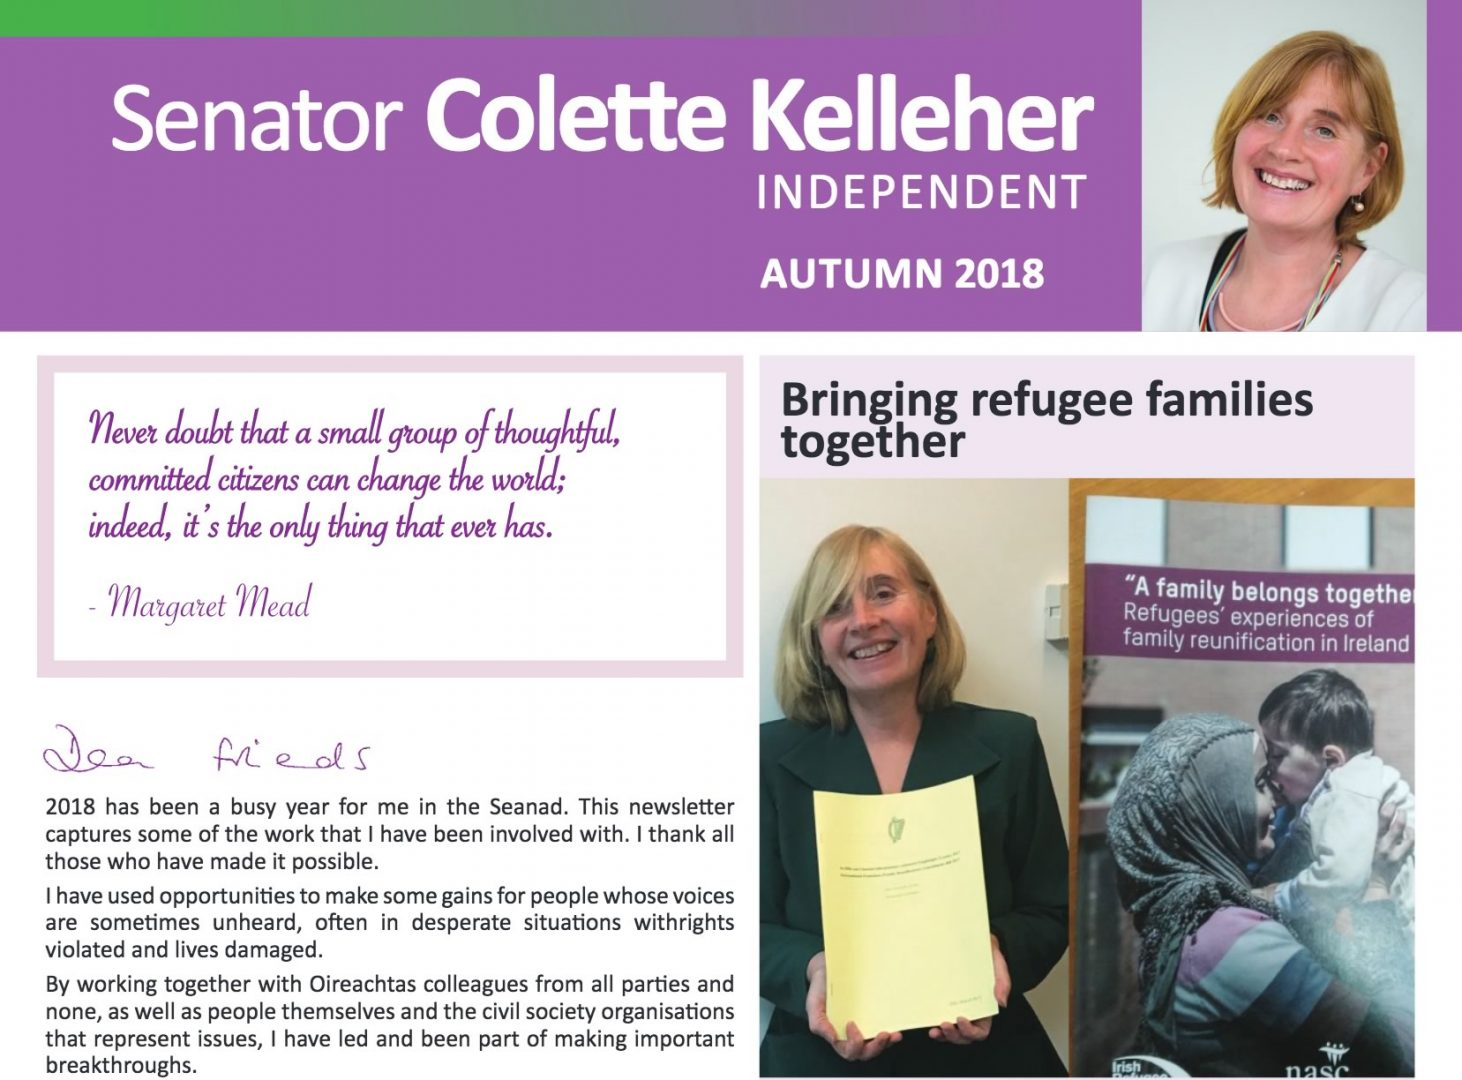 Colette Kelleher's Autumn 2018 Newsletter